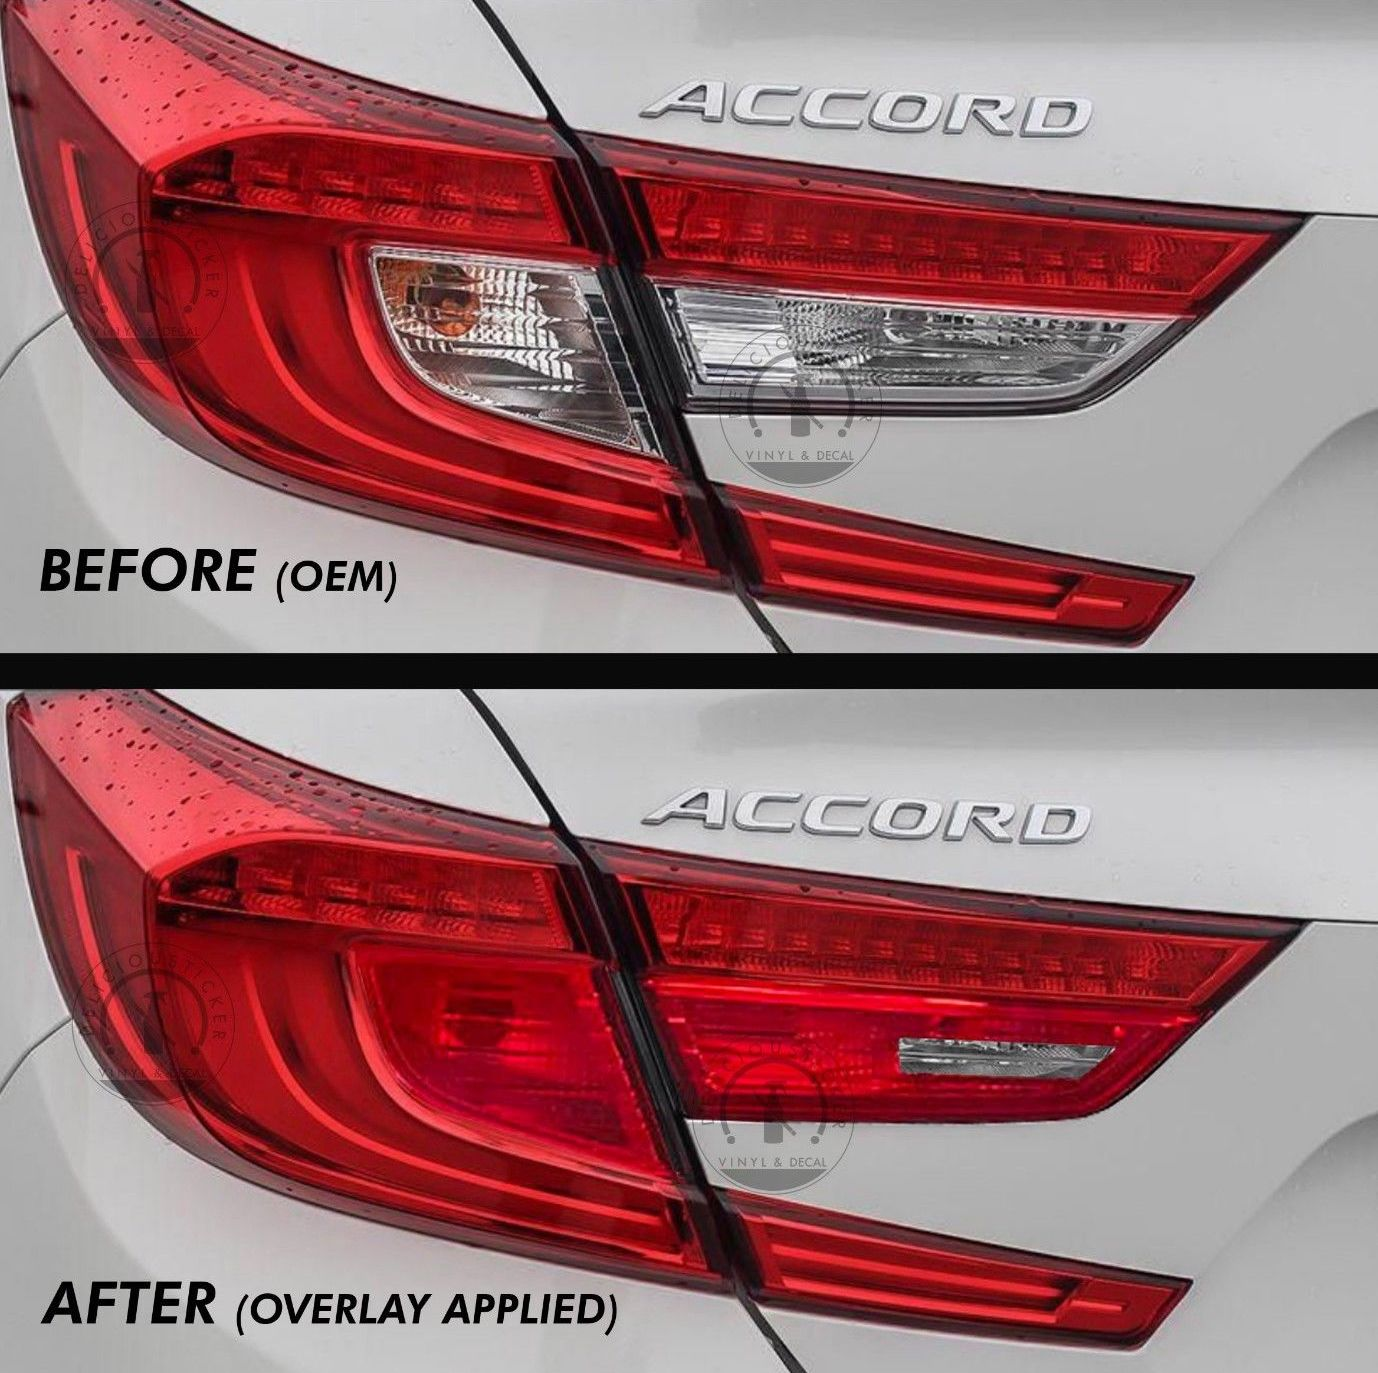 Red Tail Light Insert Overlays EURO EDITION (Fits For: 2018+ Honda Accord)